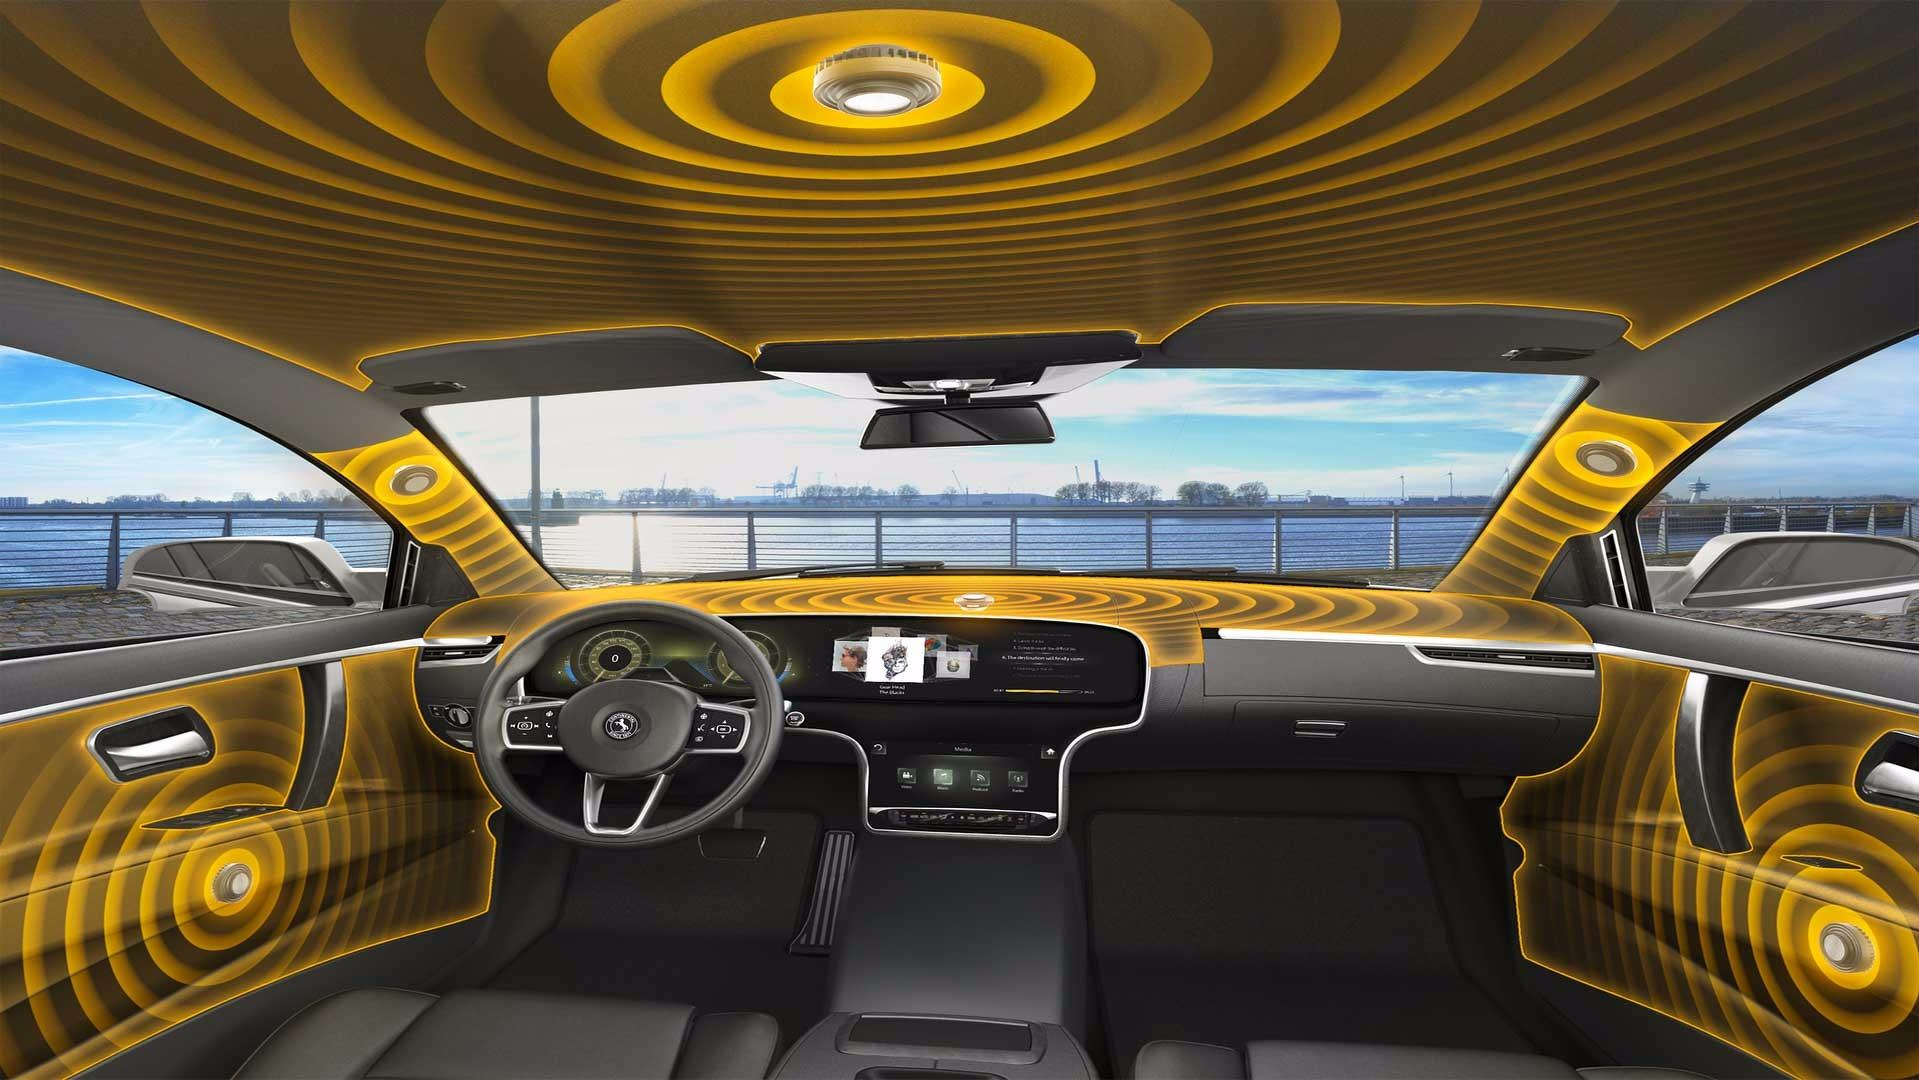 Continental S Speakerless Audio System Turns Cars Into Speakers